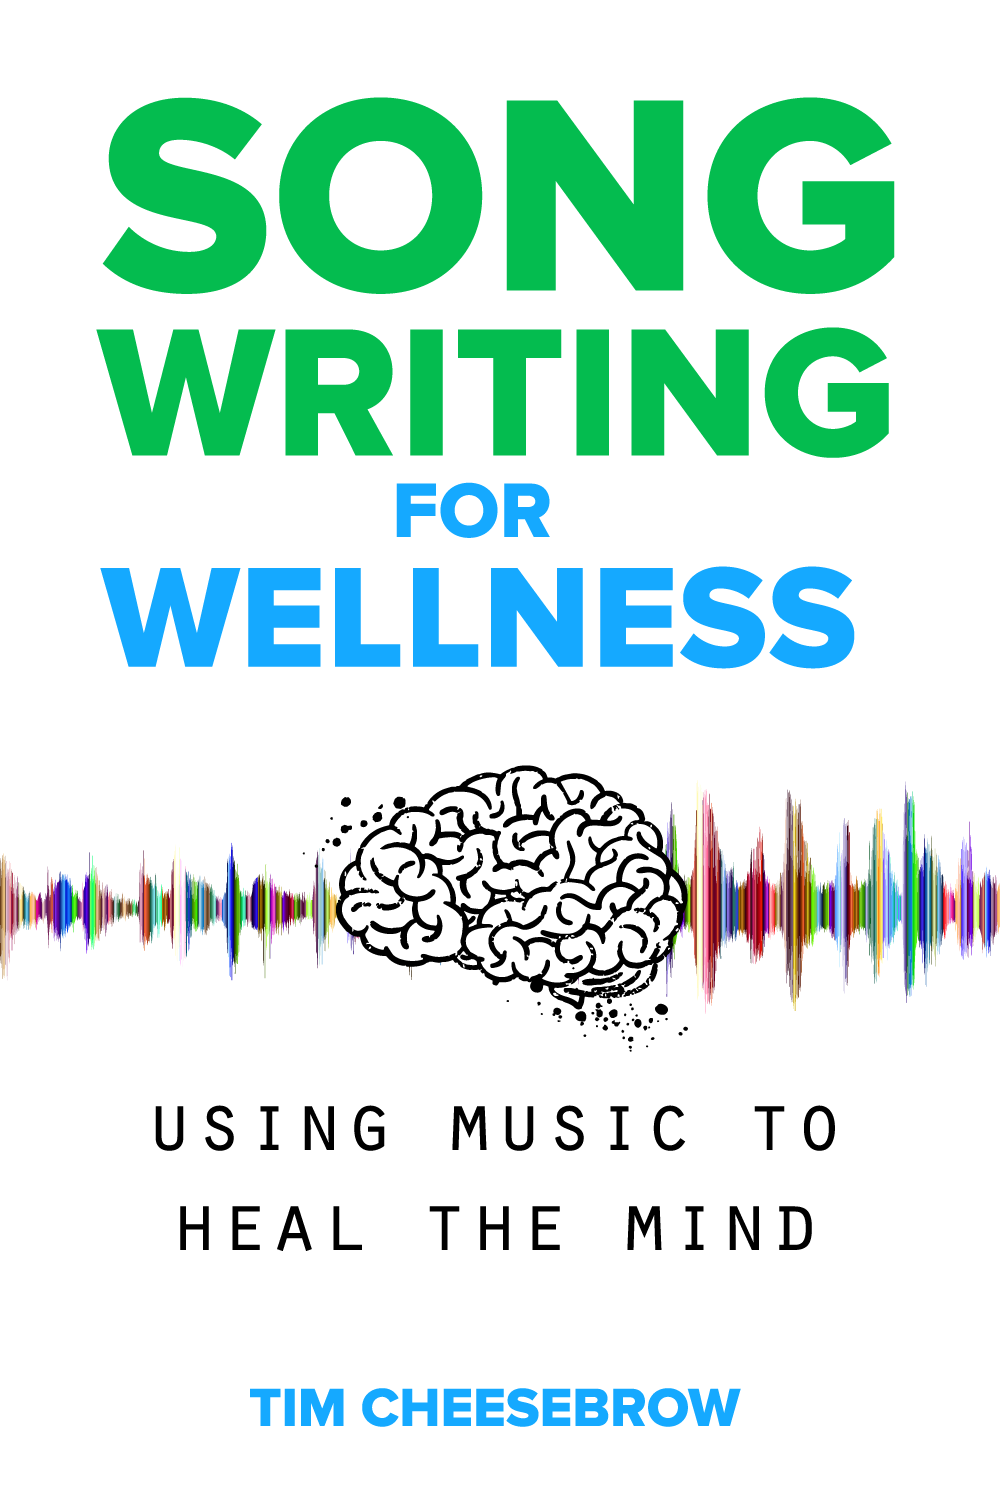 Songwriting for Wellness